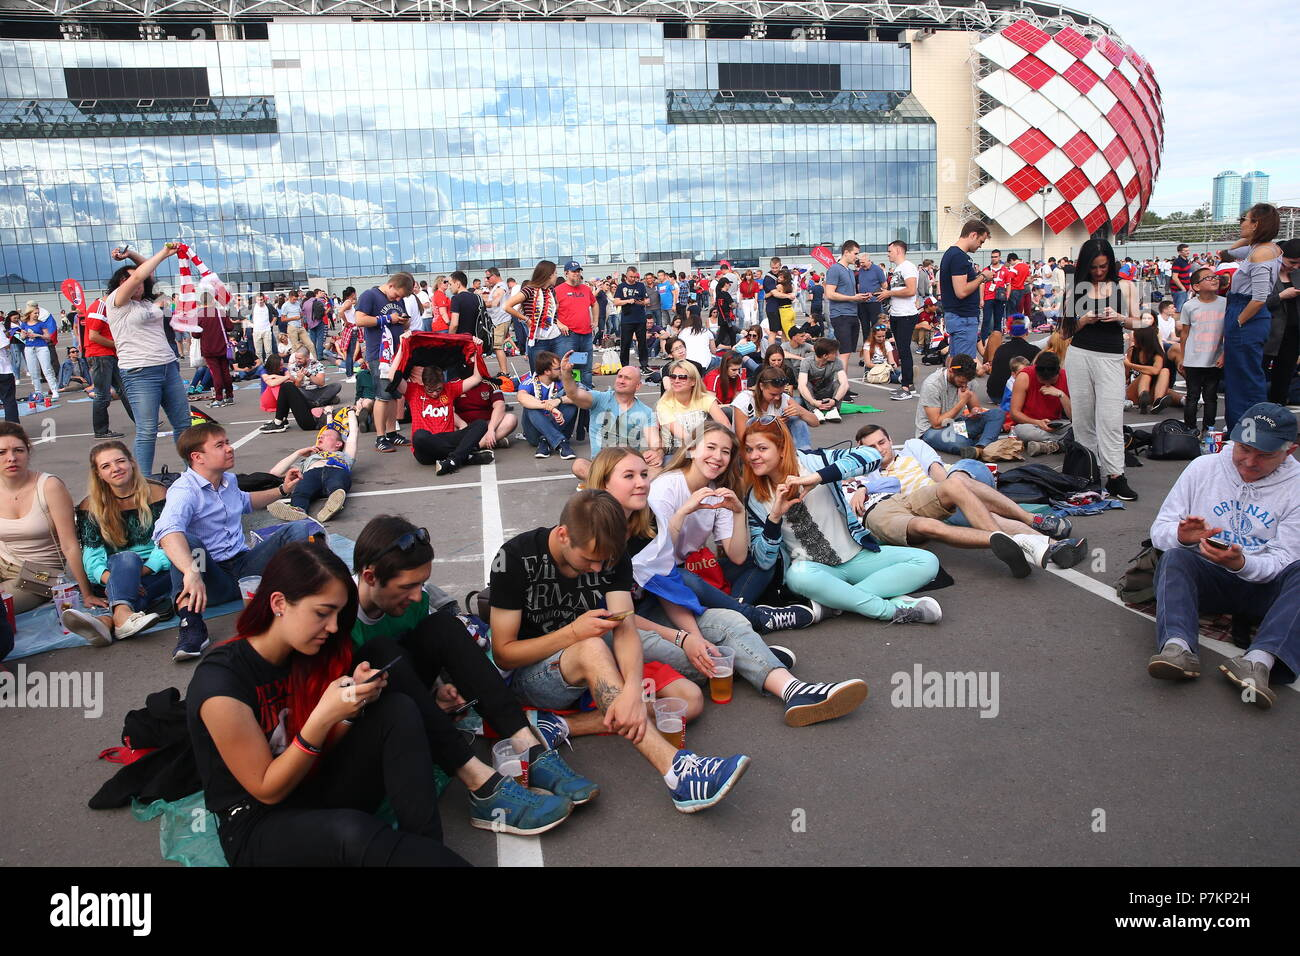 Moscow, Russia. 07th July, 2018. MOSCOW, RUSSIA - JULY 7, 2018: Football fans at a newly opened additional FIFA Fan Zone outside Spartak Stadium. Alexander Shcherbak/TASS Credit: ITAR-TASS News Agency/Alamy Live News - Stock Image